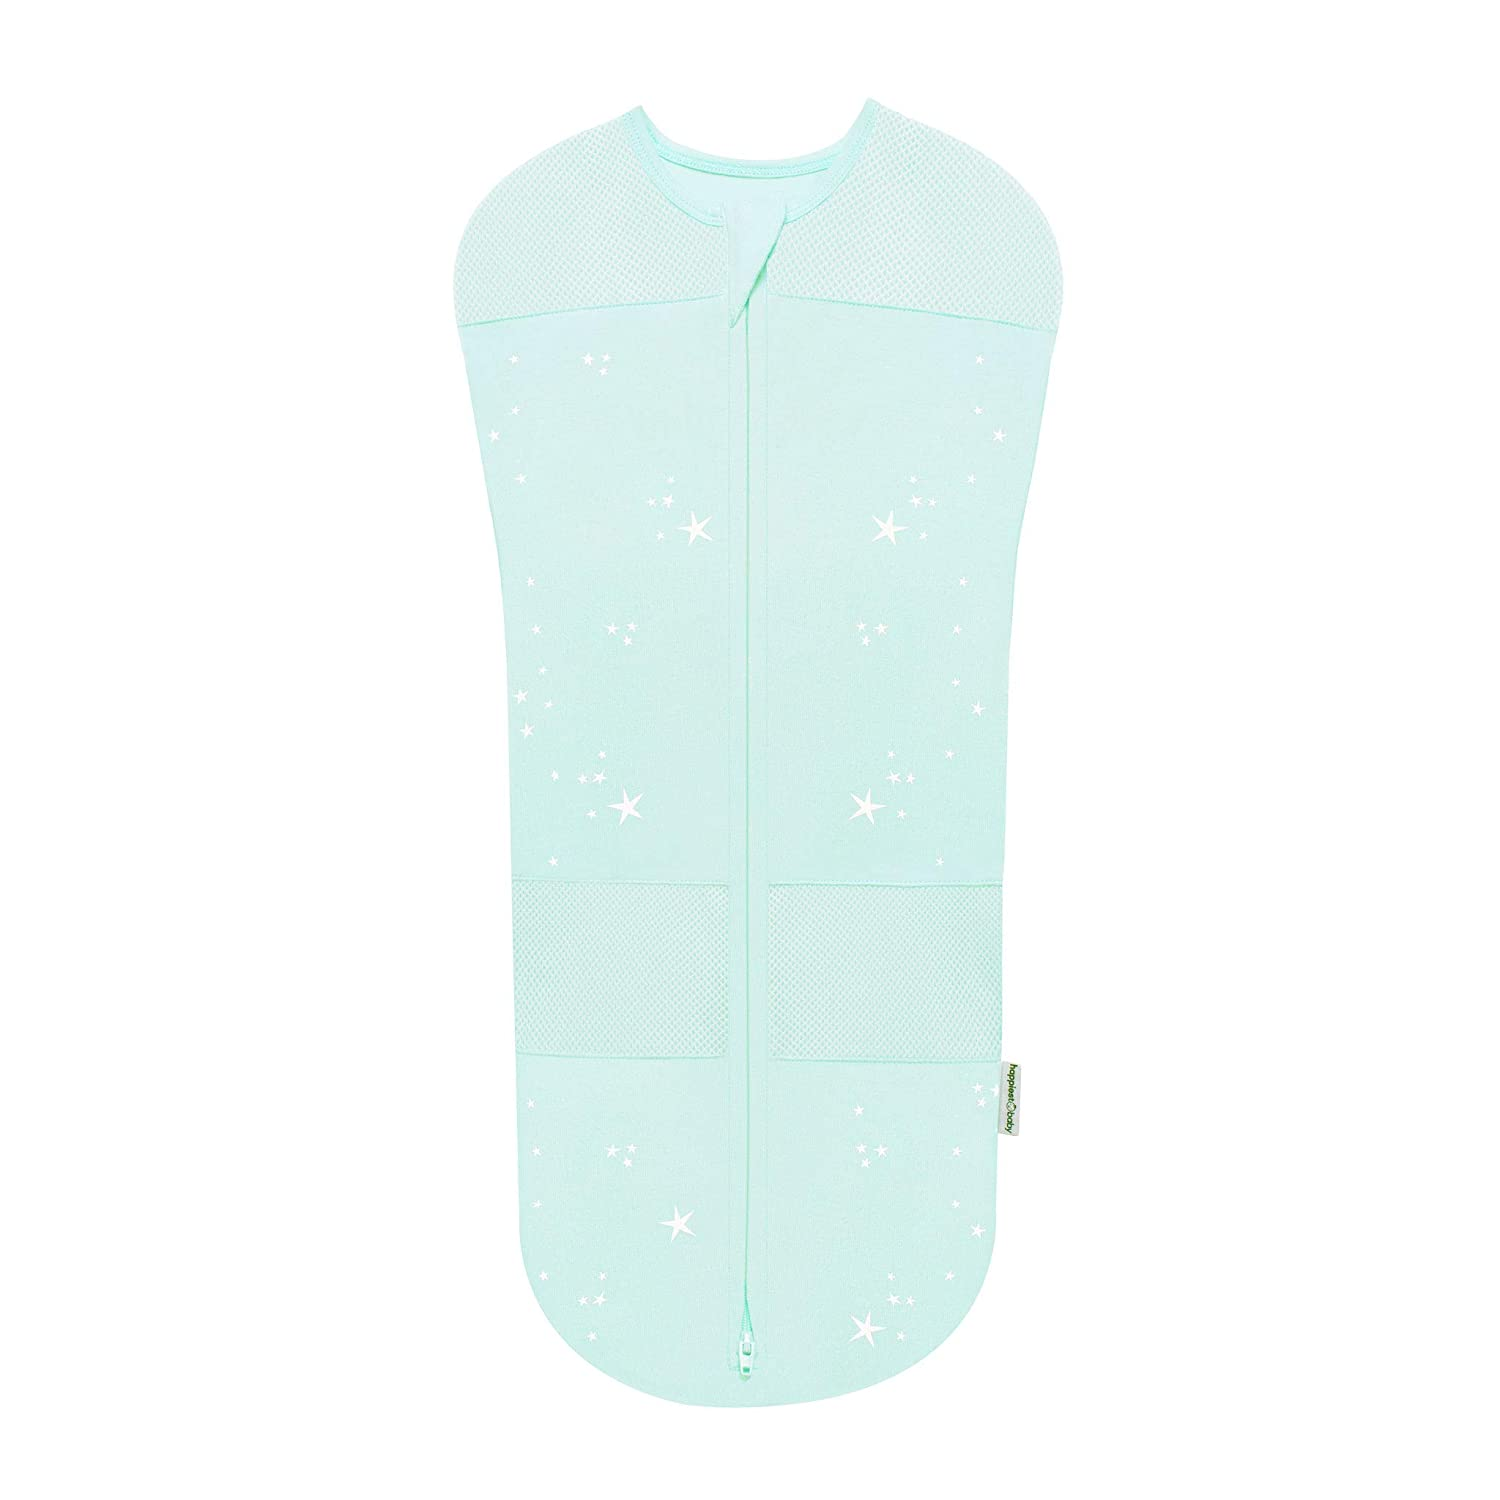 Ivory Planets, Medium Happiest Baby Sleepea Swaddle for The Best Sleep Hip Safe Doctor Designed 5-Second Swaddle Baby Doesn/'t Get Upset by Accidentally Rubbing Hands on Face